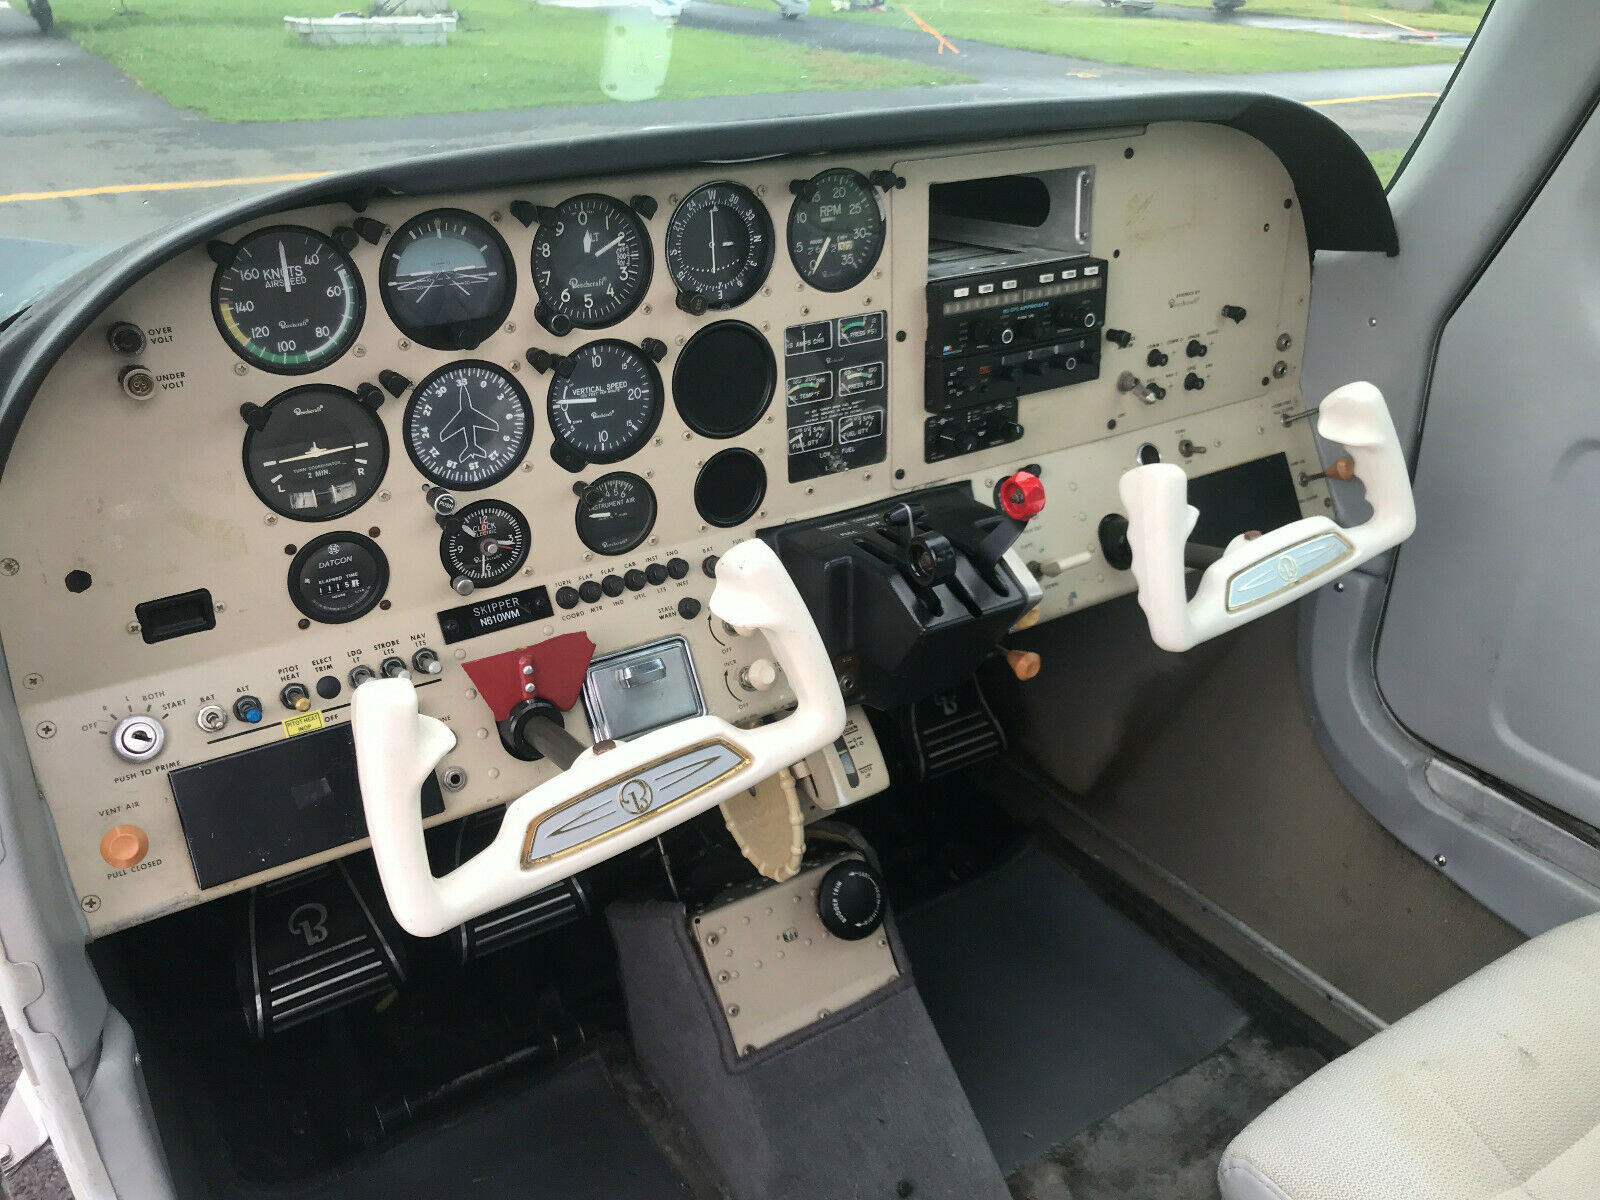 low time and serviced 1980 Beech 77 Skipper aircraft